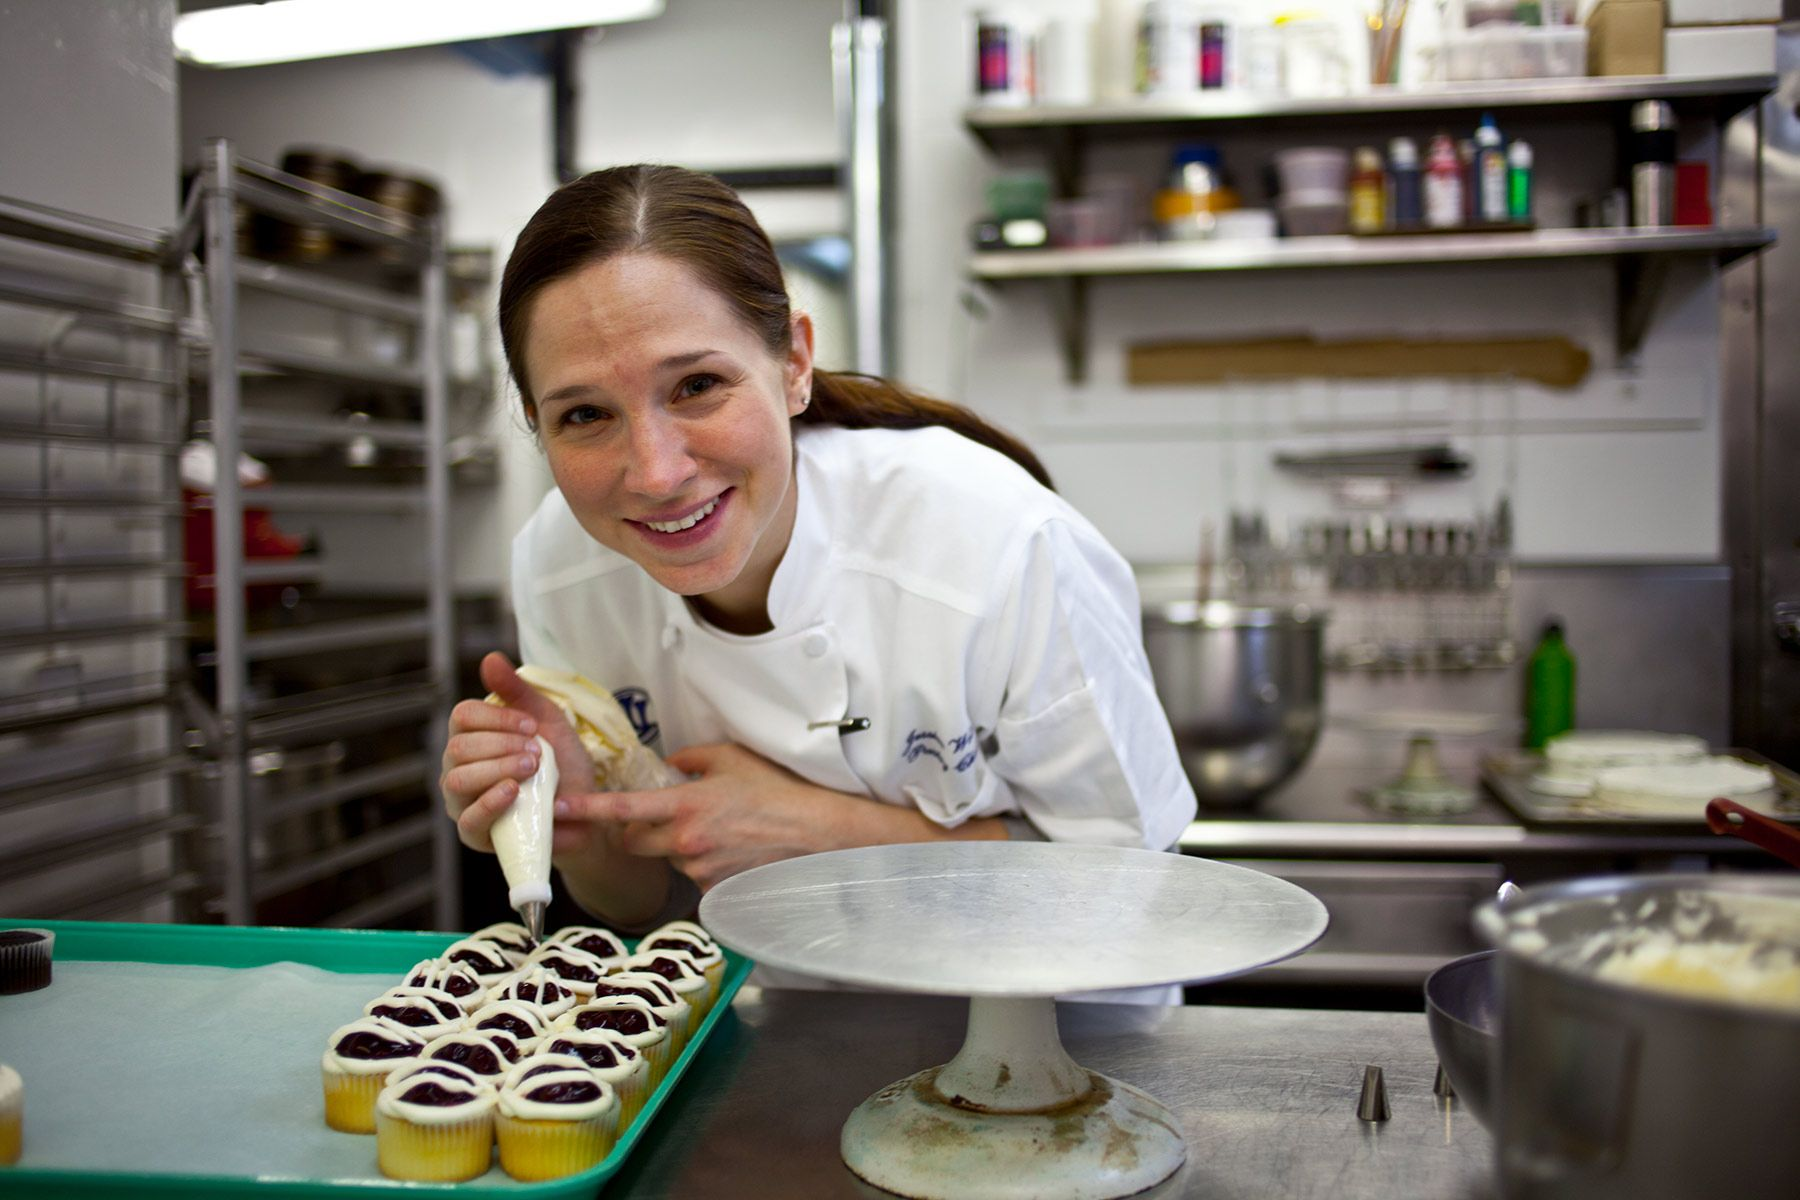 Jessica Weiss in the Union League of  Chicago kitchen icing cupcakes.  Jessica is  Executive Pastry Chef at Marta of the Union Square Hospitality Group, has also been Executive Pastry Chef of Maialino of the Union Square Hospitality Group.